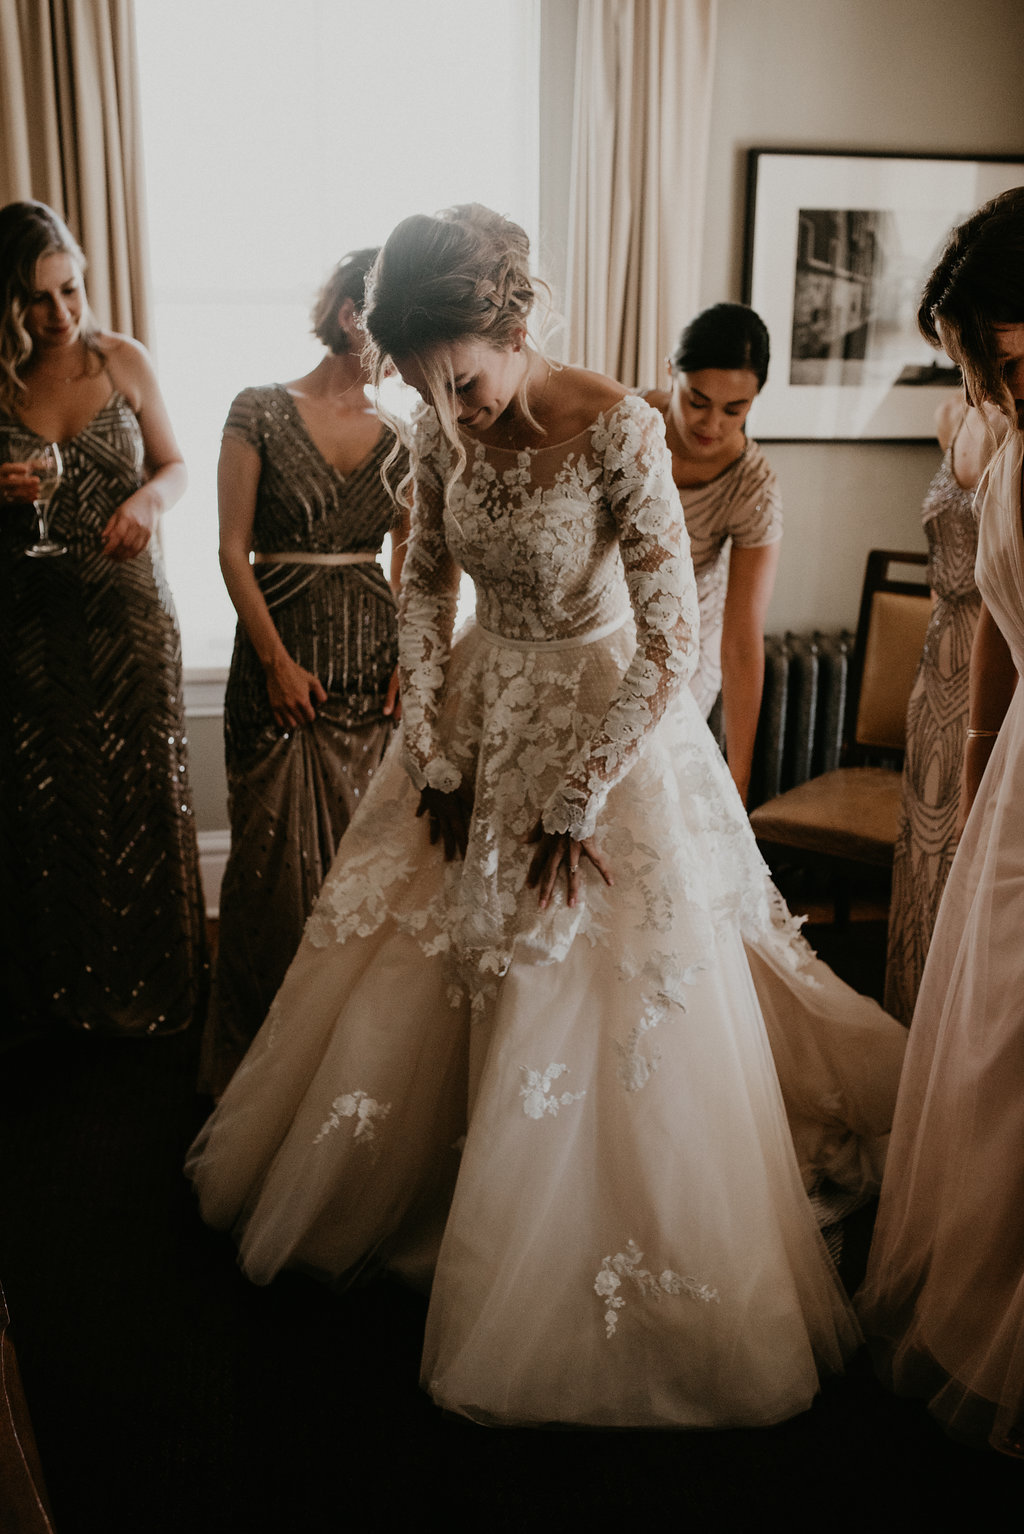 Custom lace wedding gown with blush overskirt